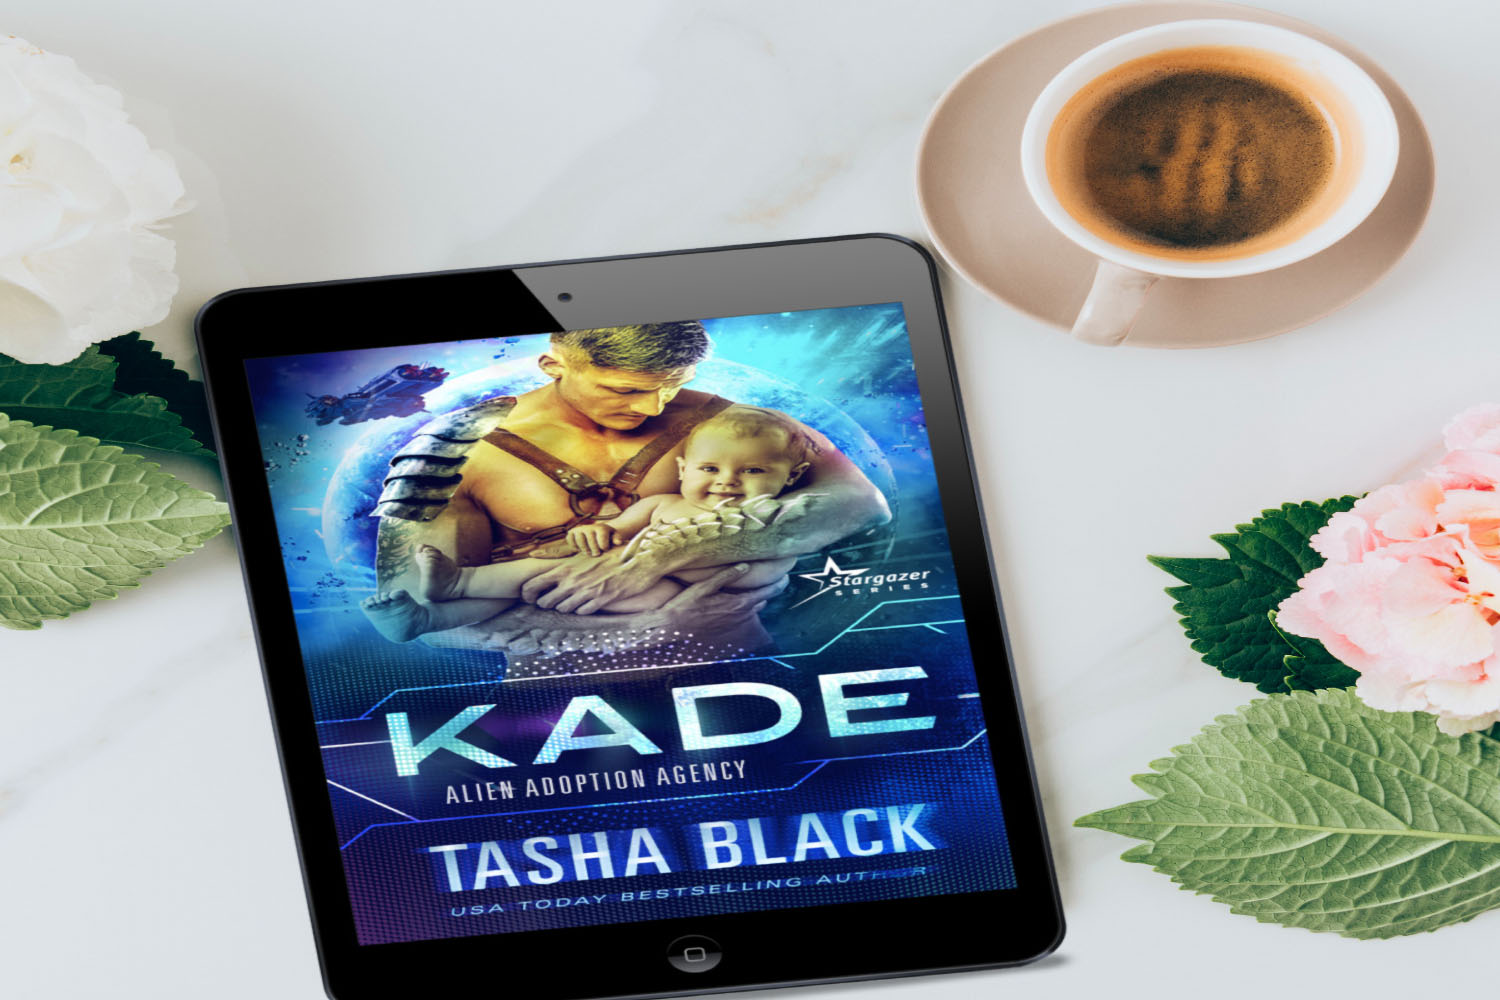 Kade by Tasha Black